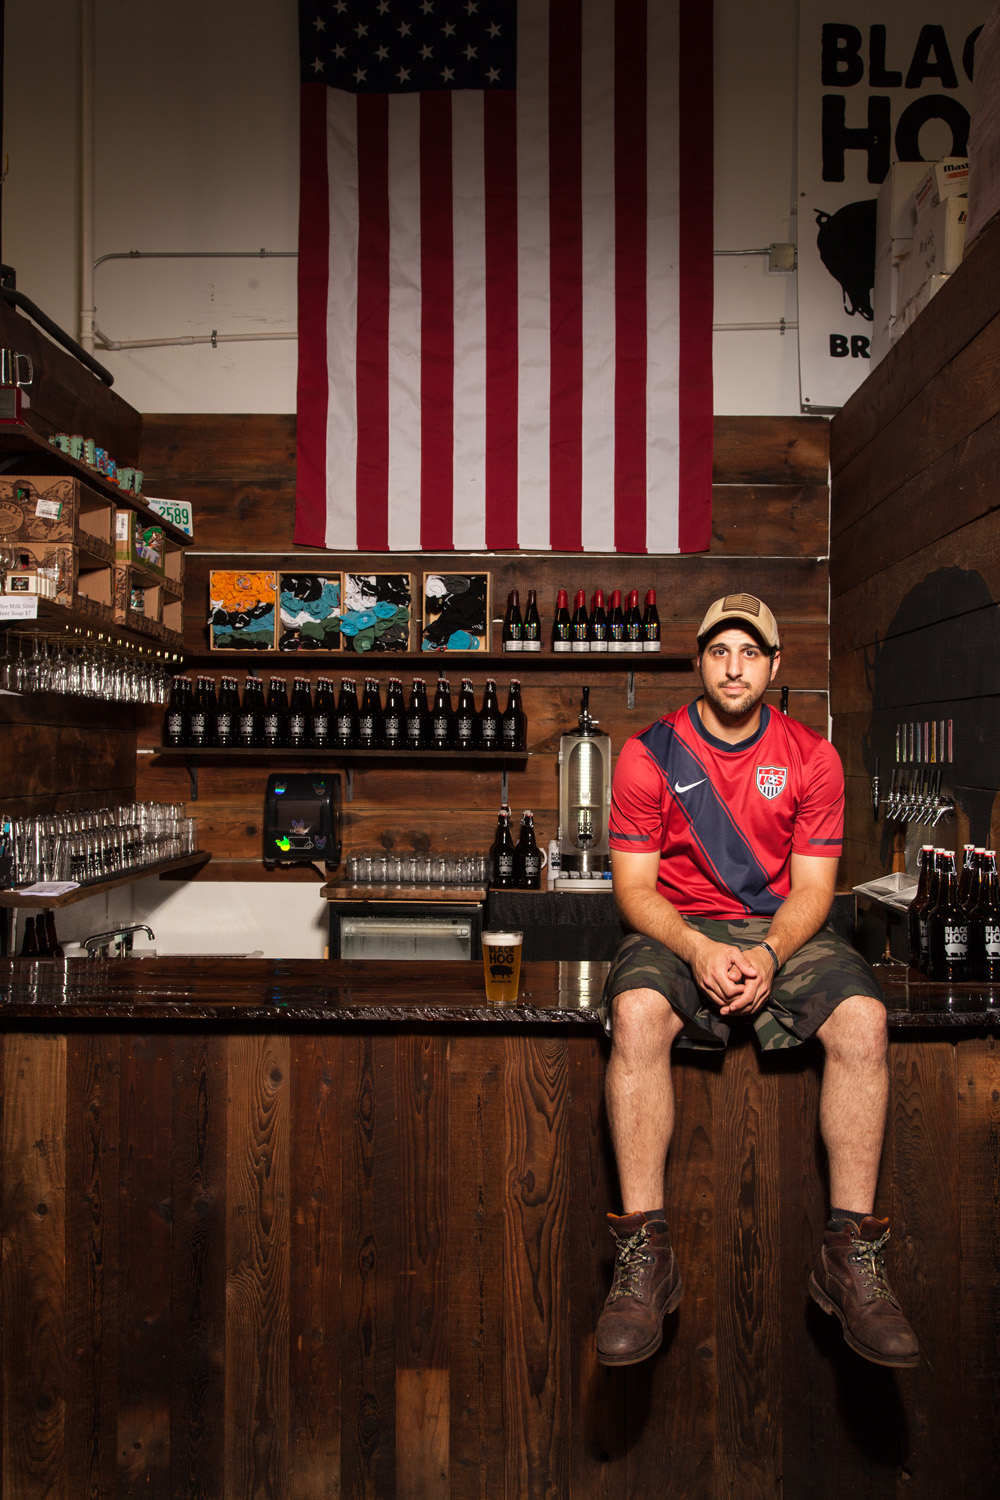 Justin Benvenuto, Lead Brewer at Black Hog Brewing Co. Oxford, CT Established in 2014